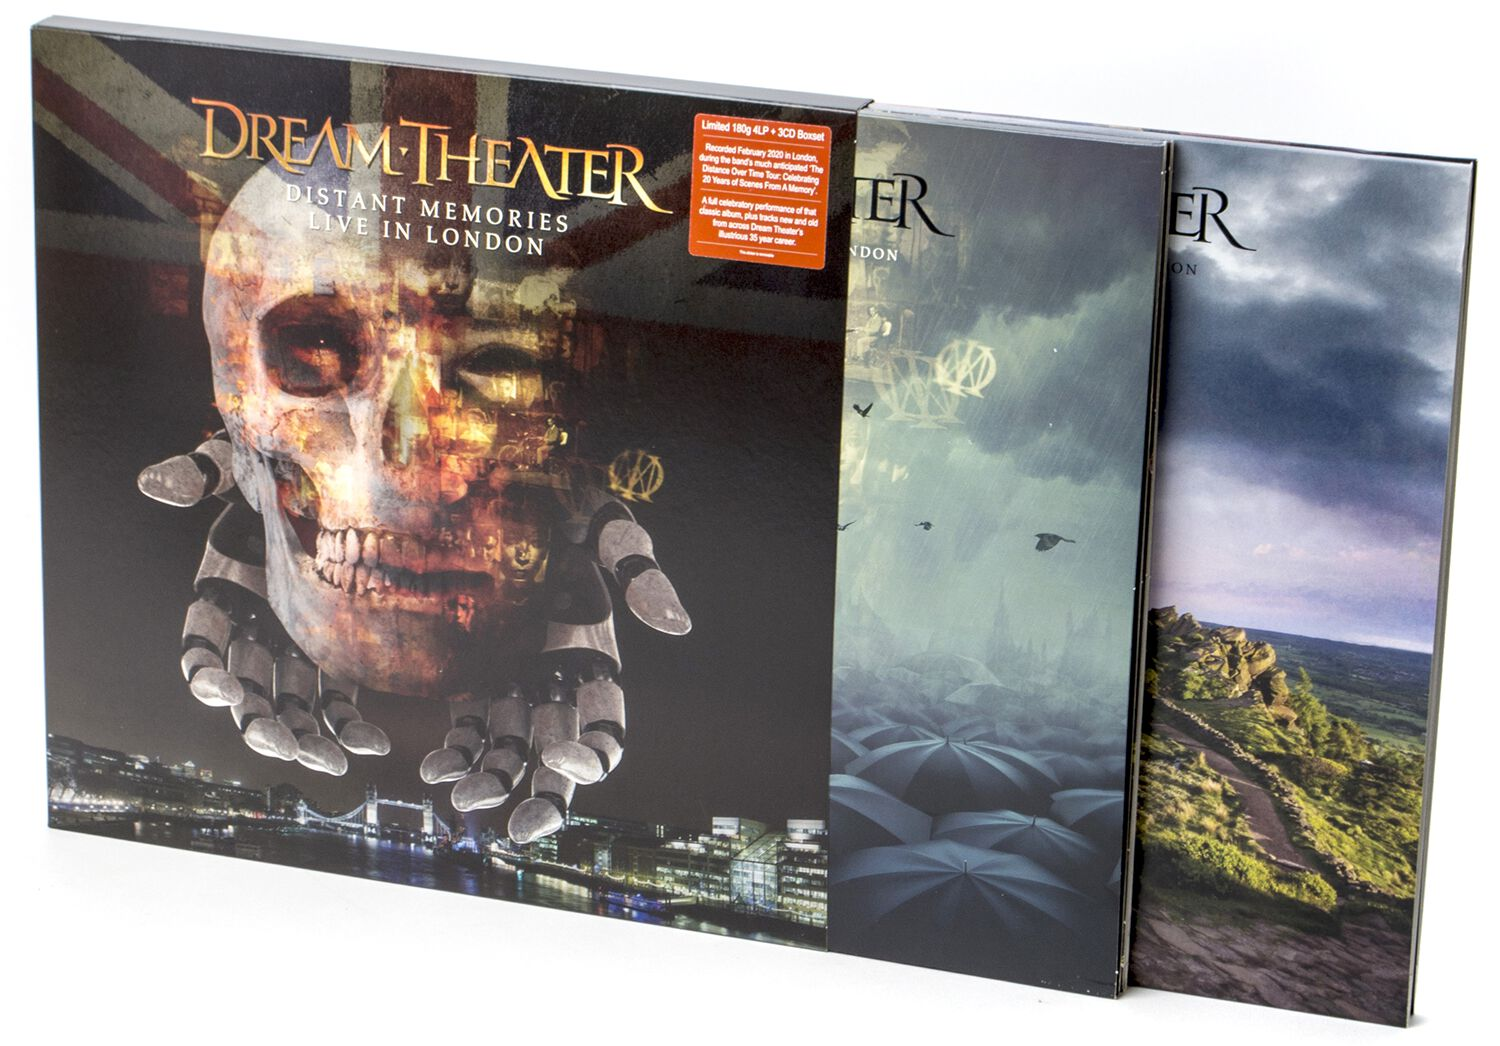 Image of Dream Theater Distant memories - Live in London 4-LP & 3-CD Standard